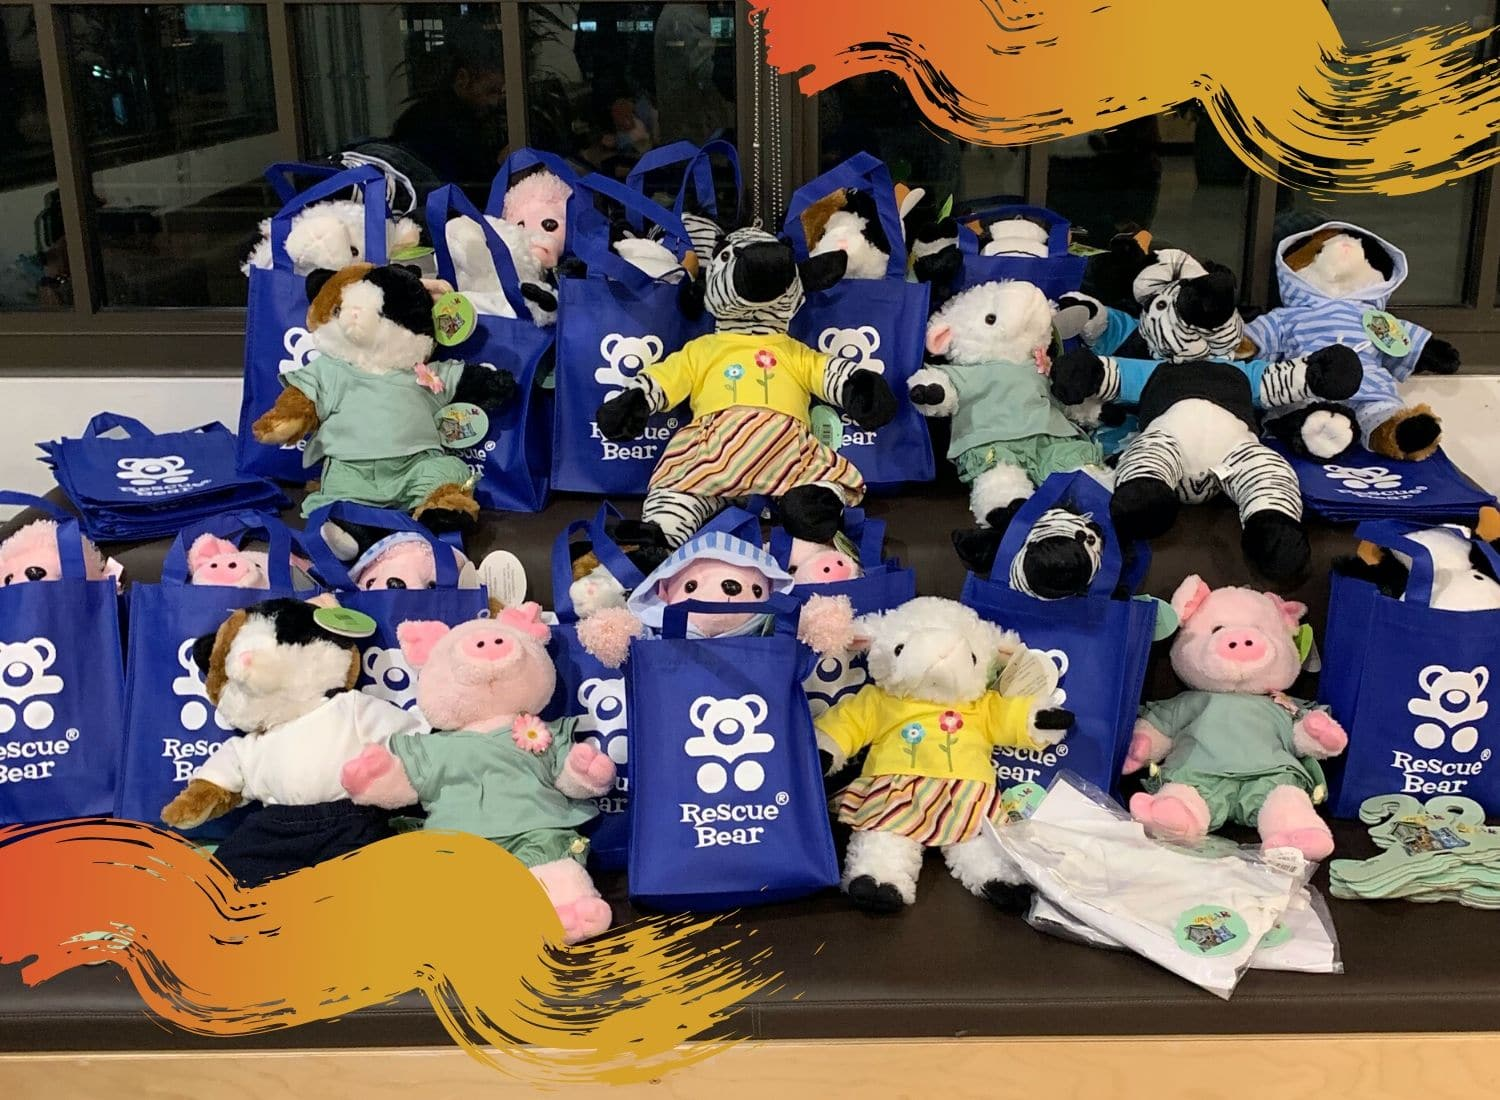 A bundle of charity teddy bears being donated during The Leaders Institute event.